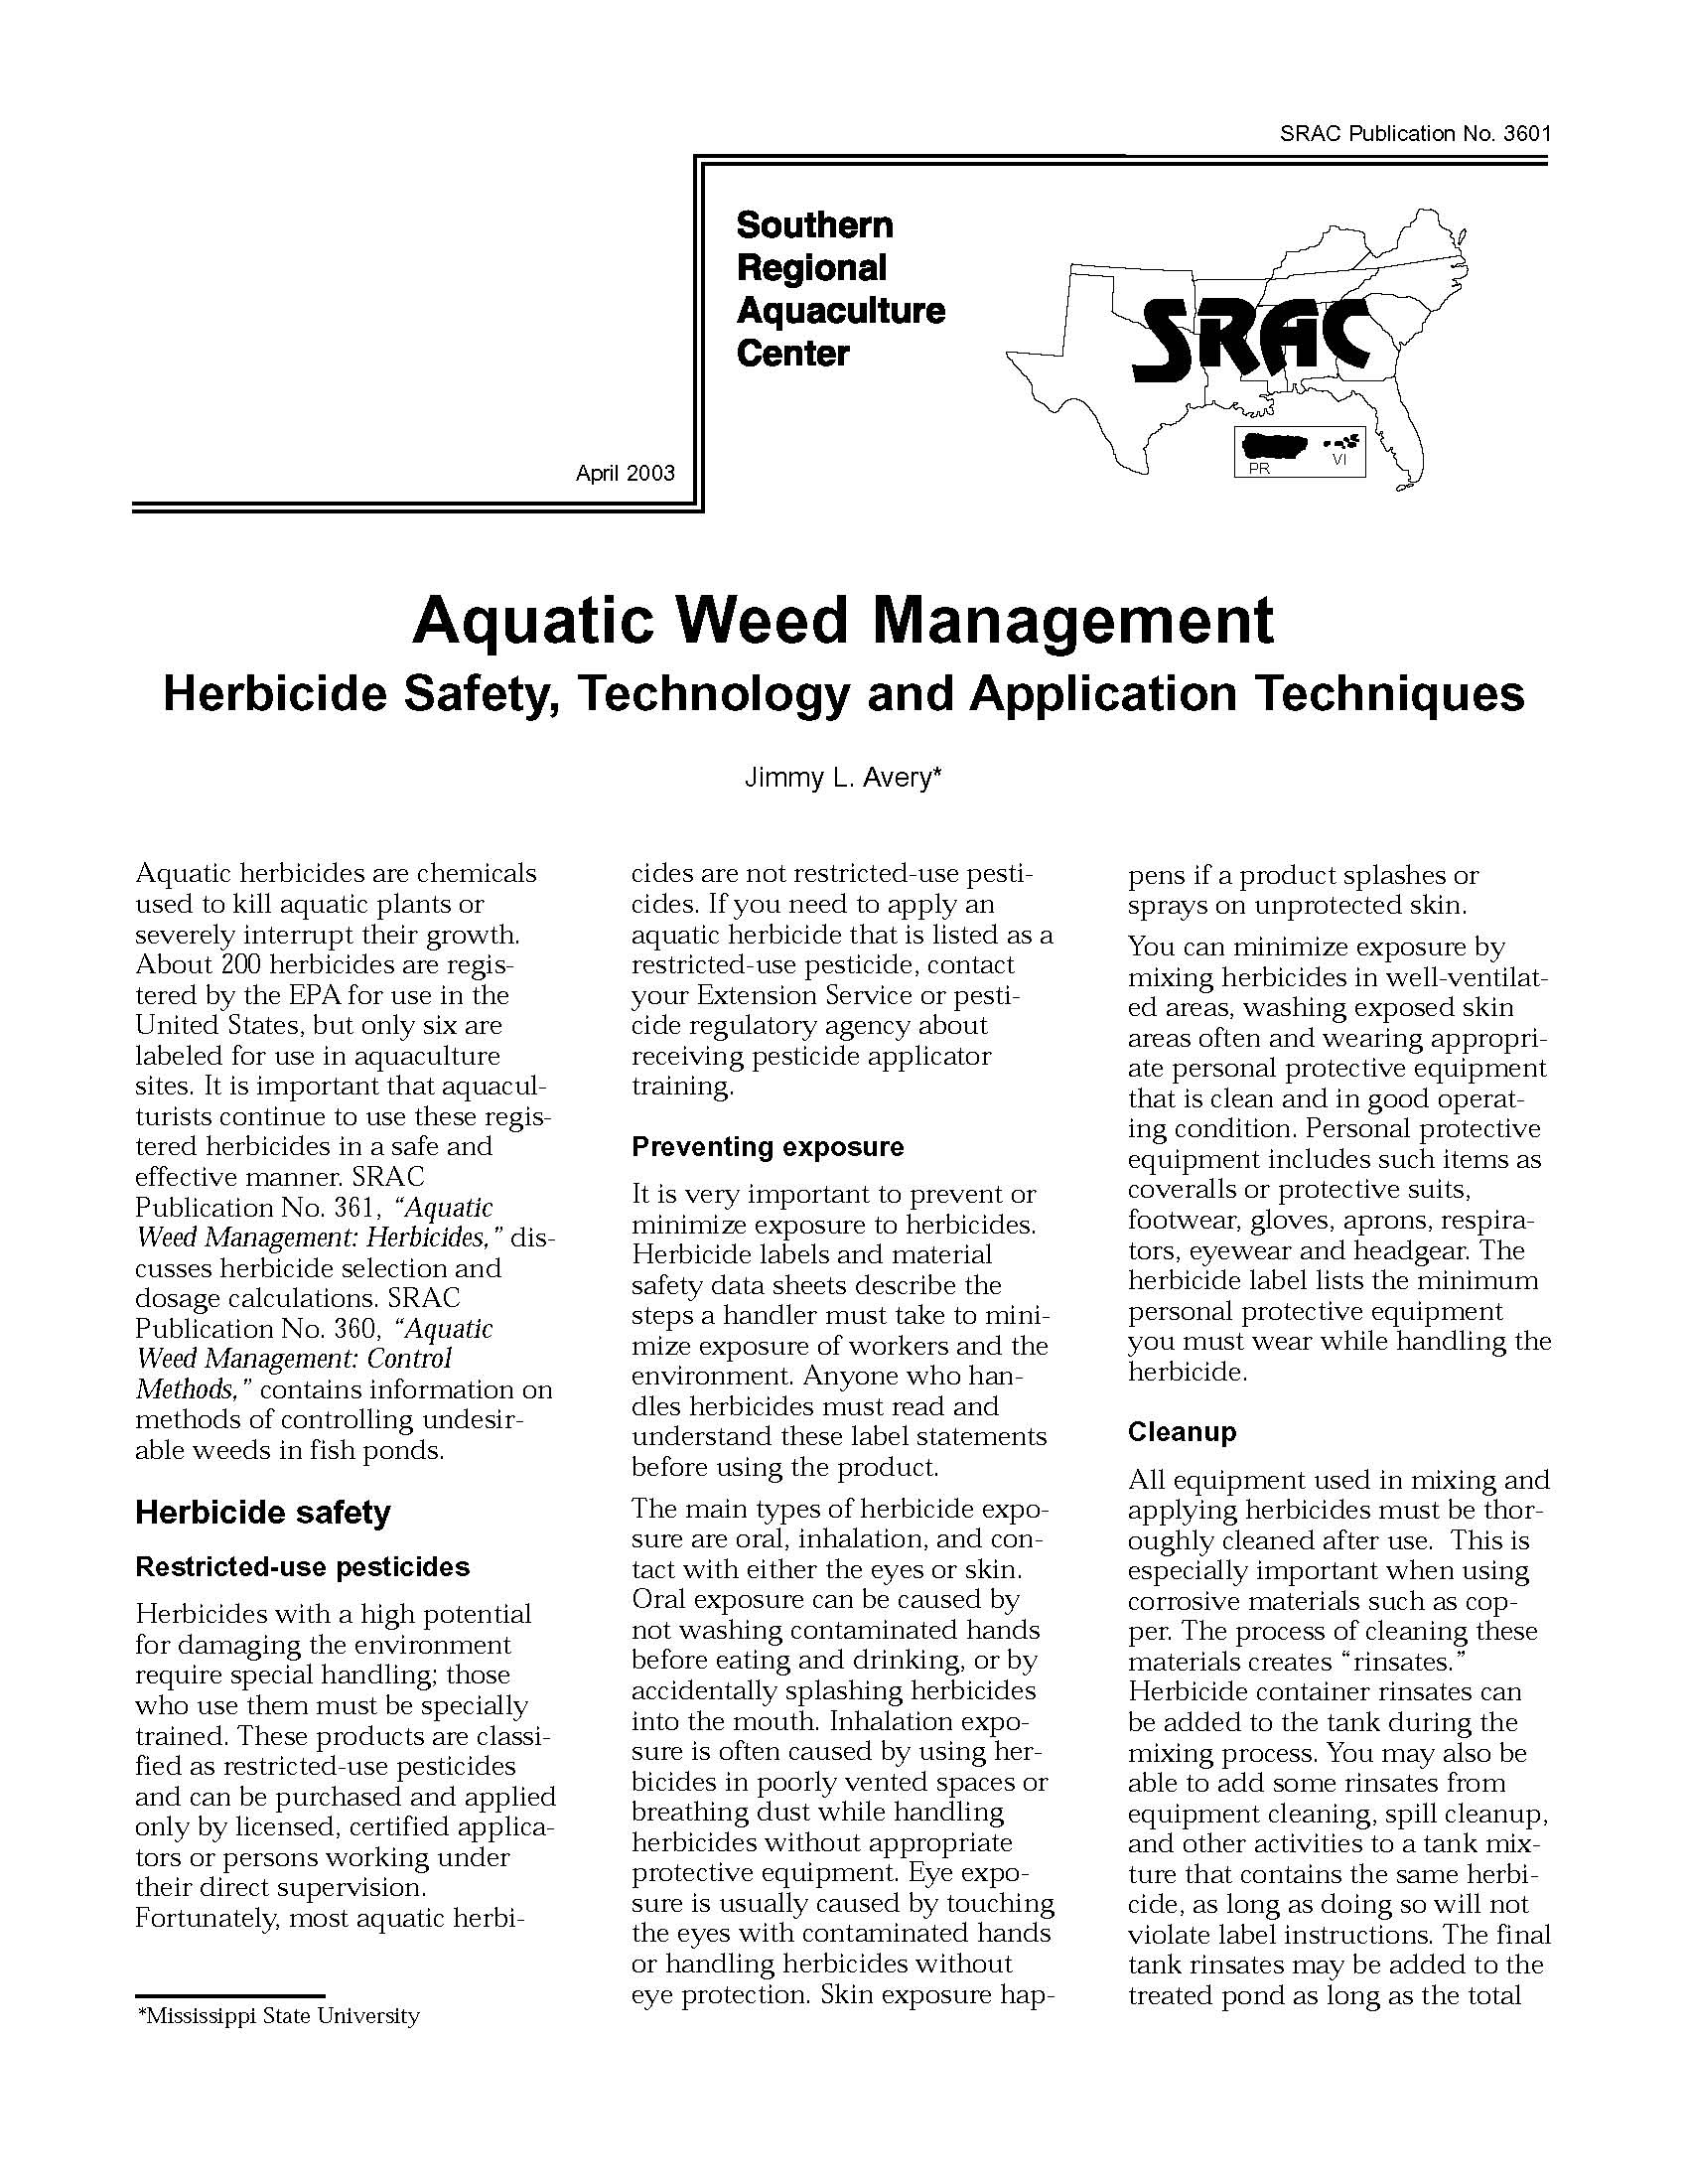 Aquatic Weed Management:  Herbicide Safety Technology and Application Techniques